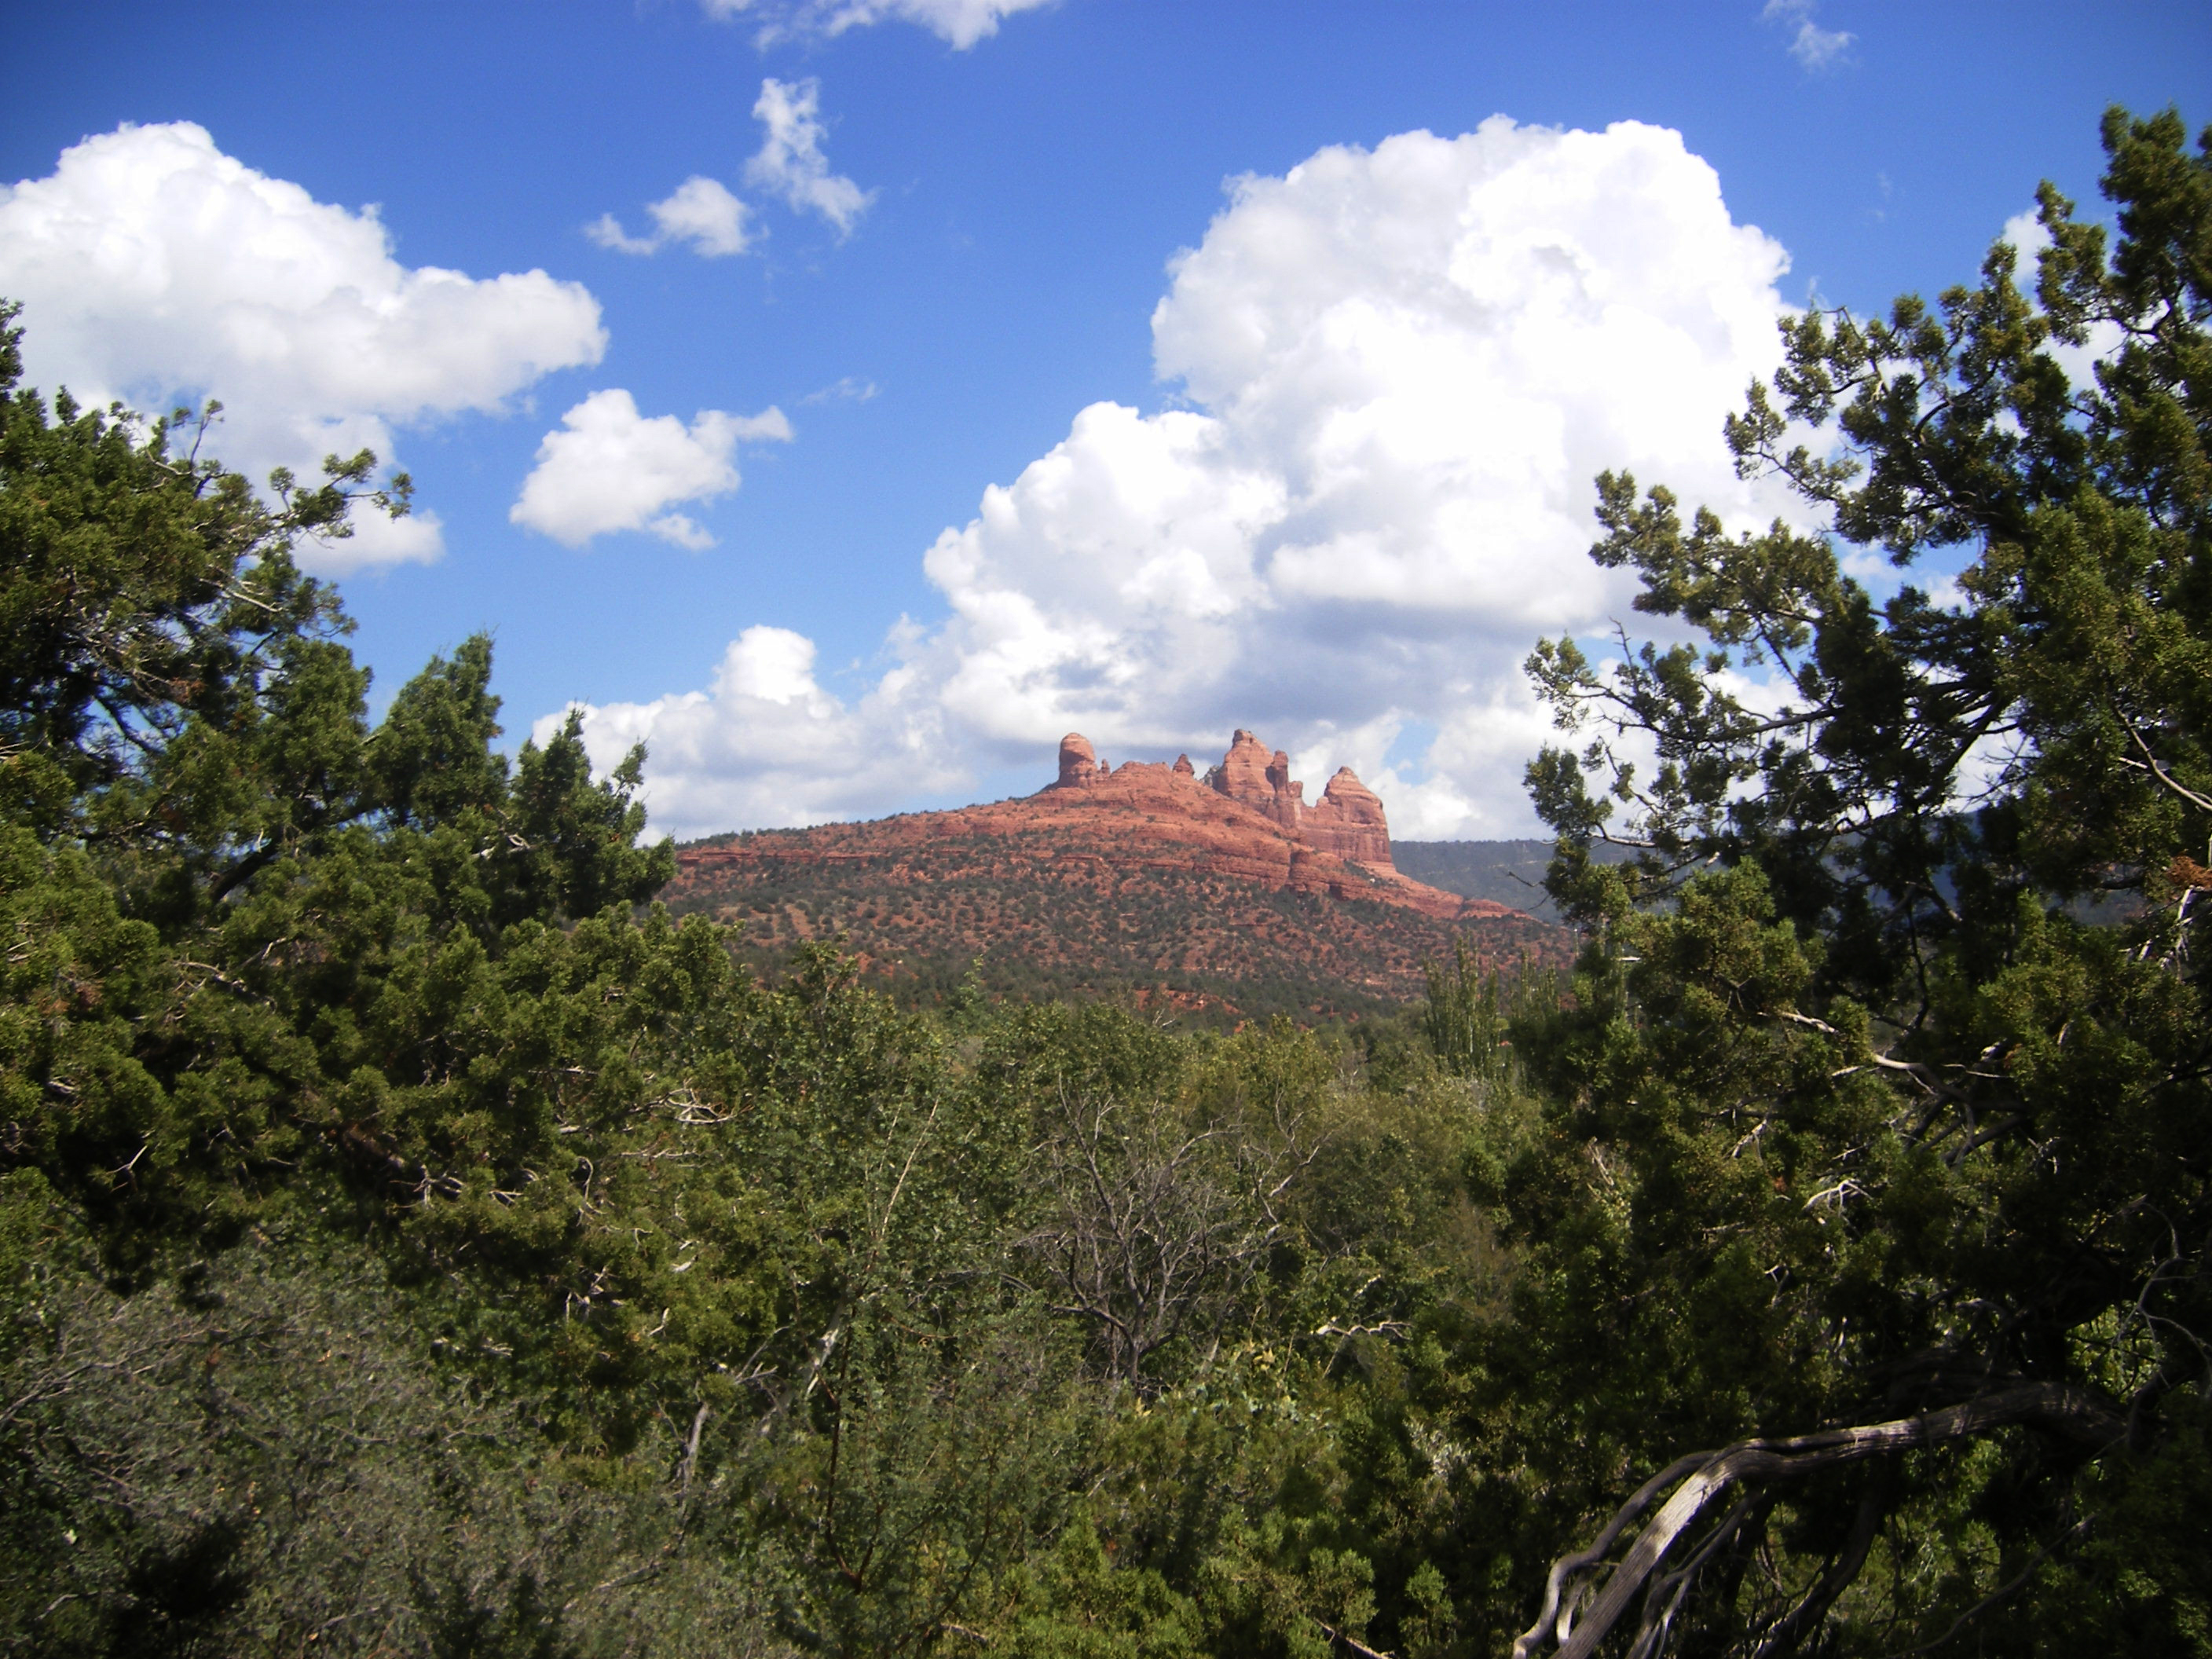 Driving into Sedona and seeing red rocks